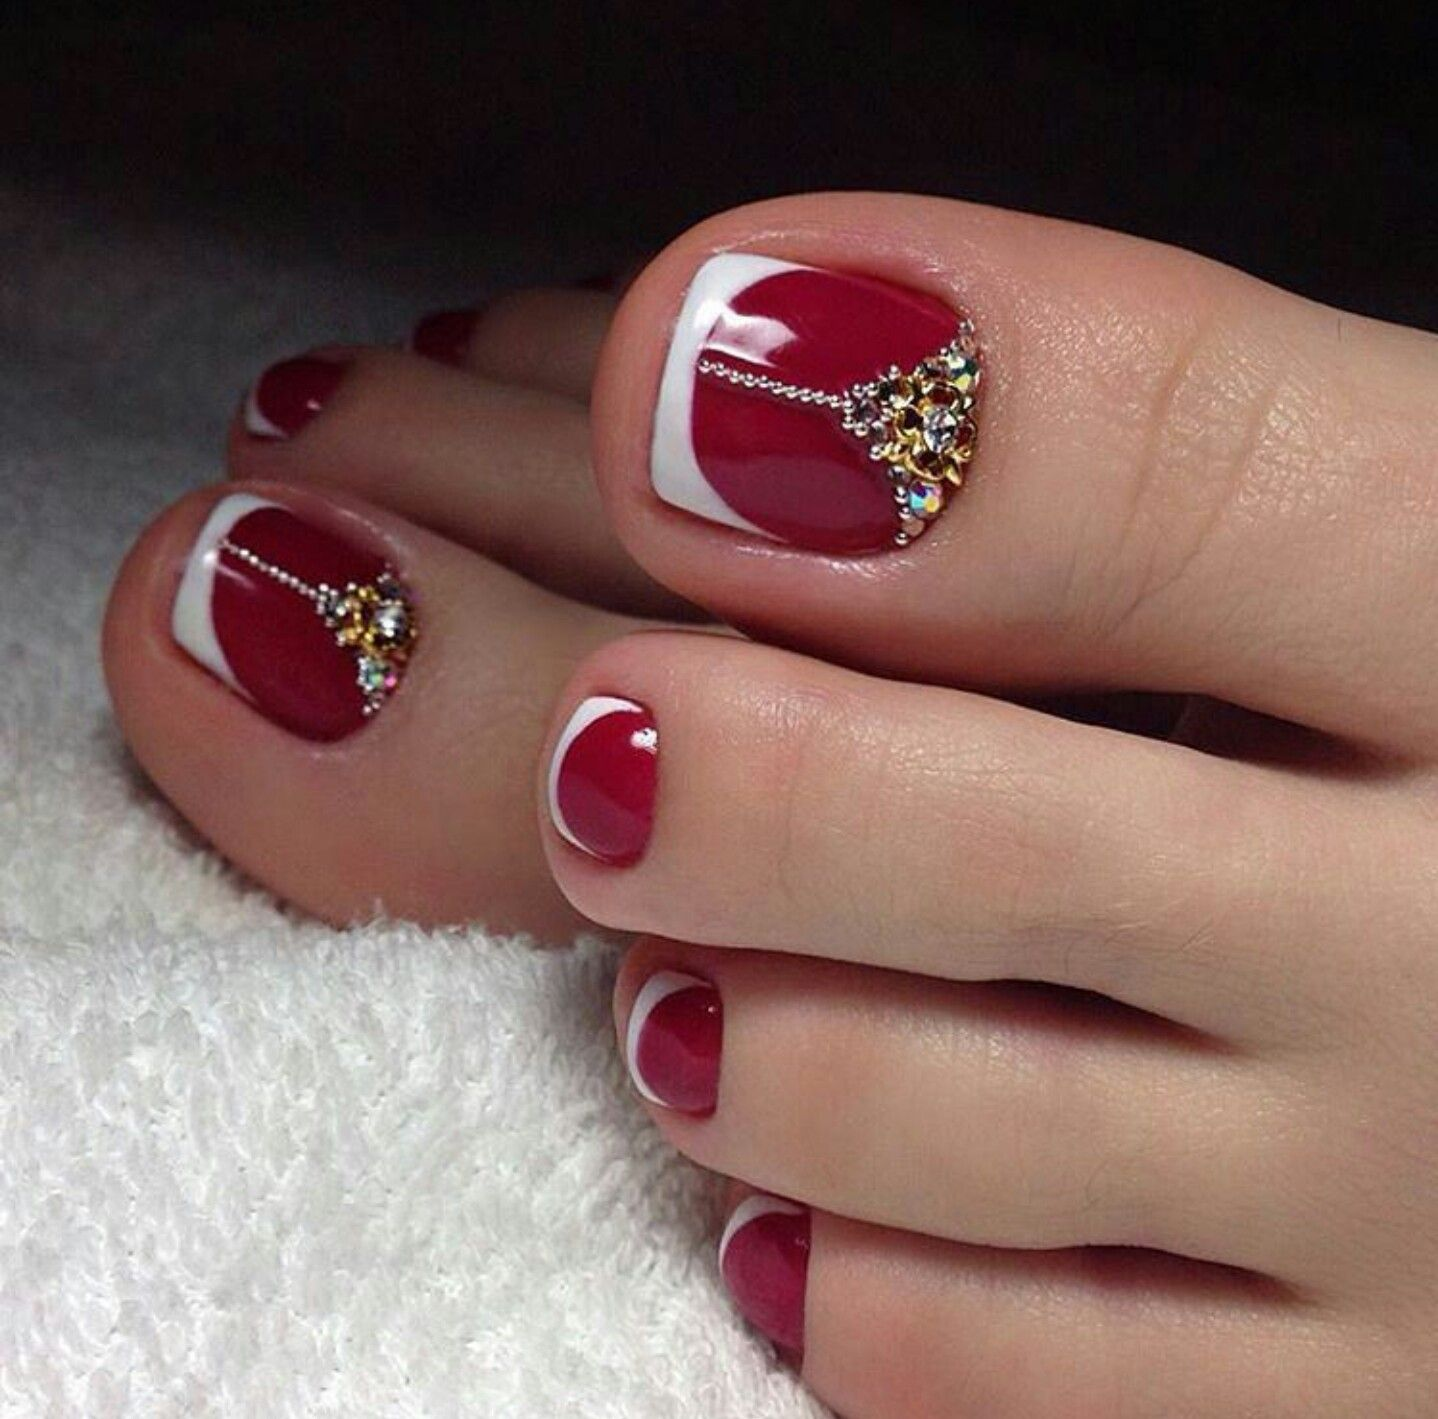 Red toe nails with white french tip and rhinestones - Red Toe Nails With White French Tip And Rhinestones Toe Nail Art